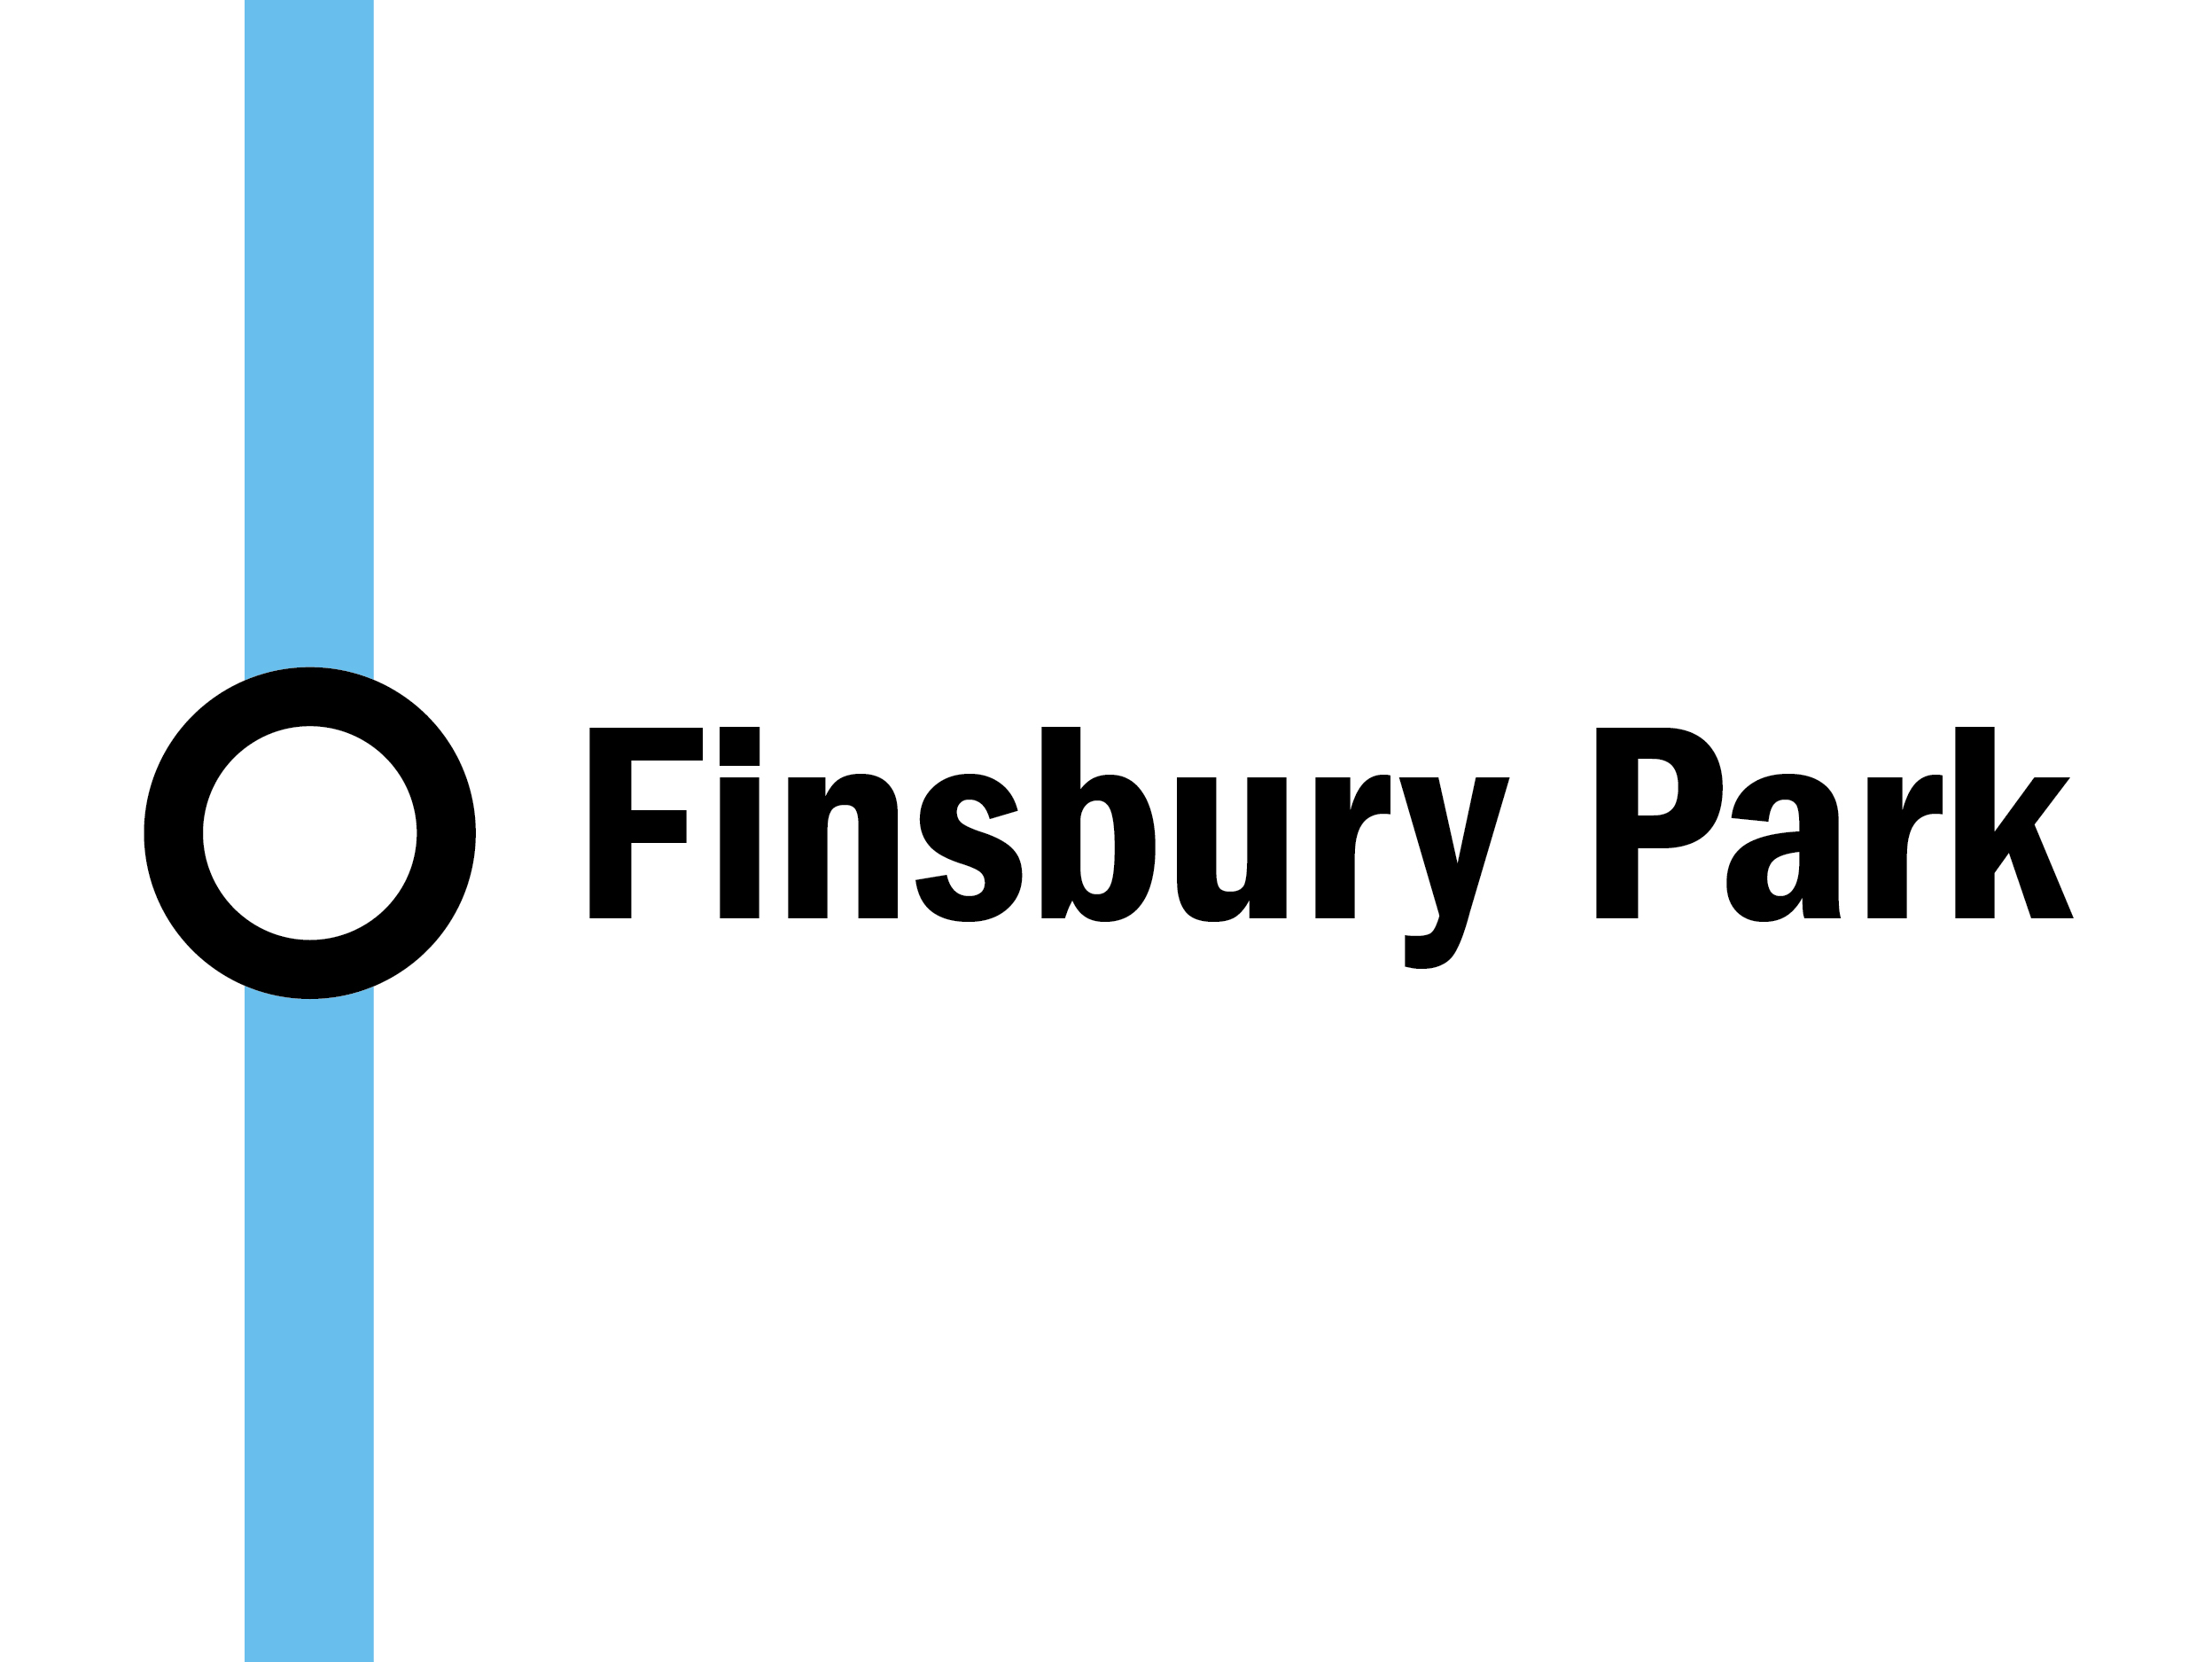 Night tube: Finsbury Park